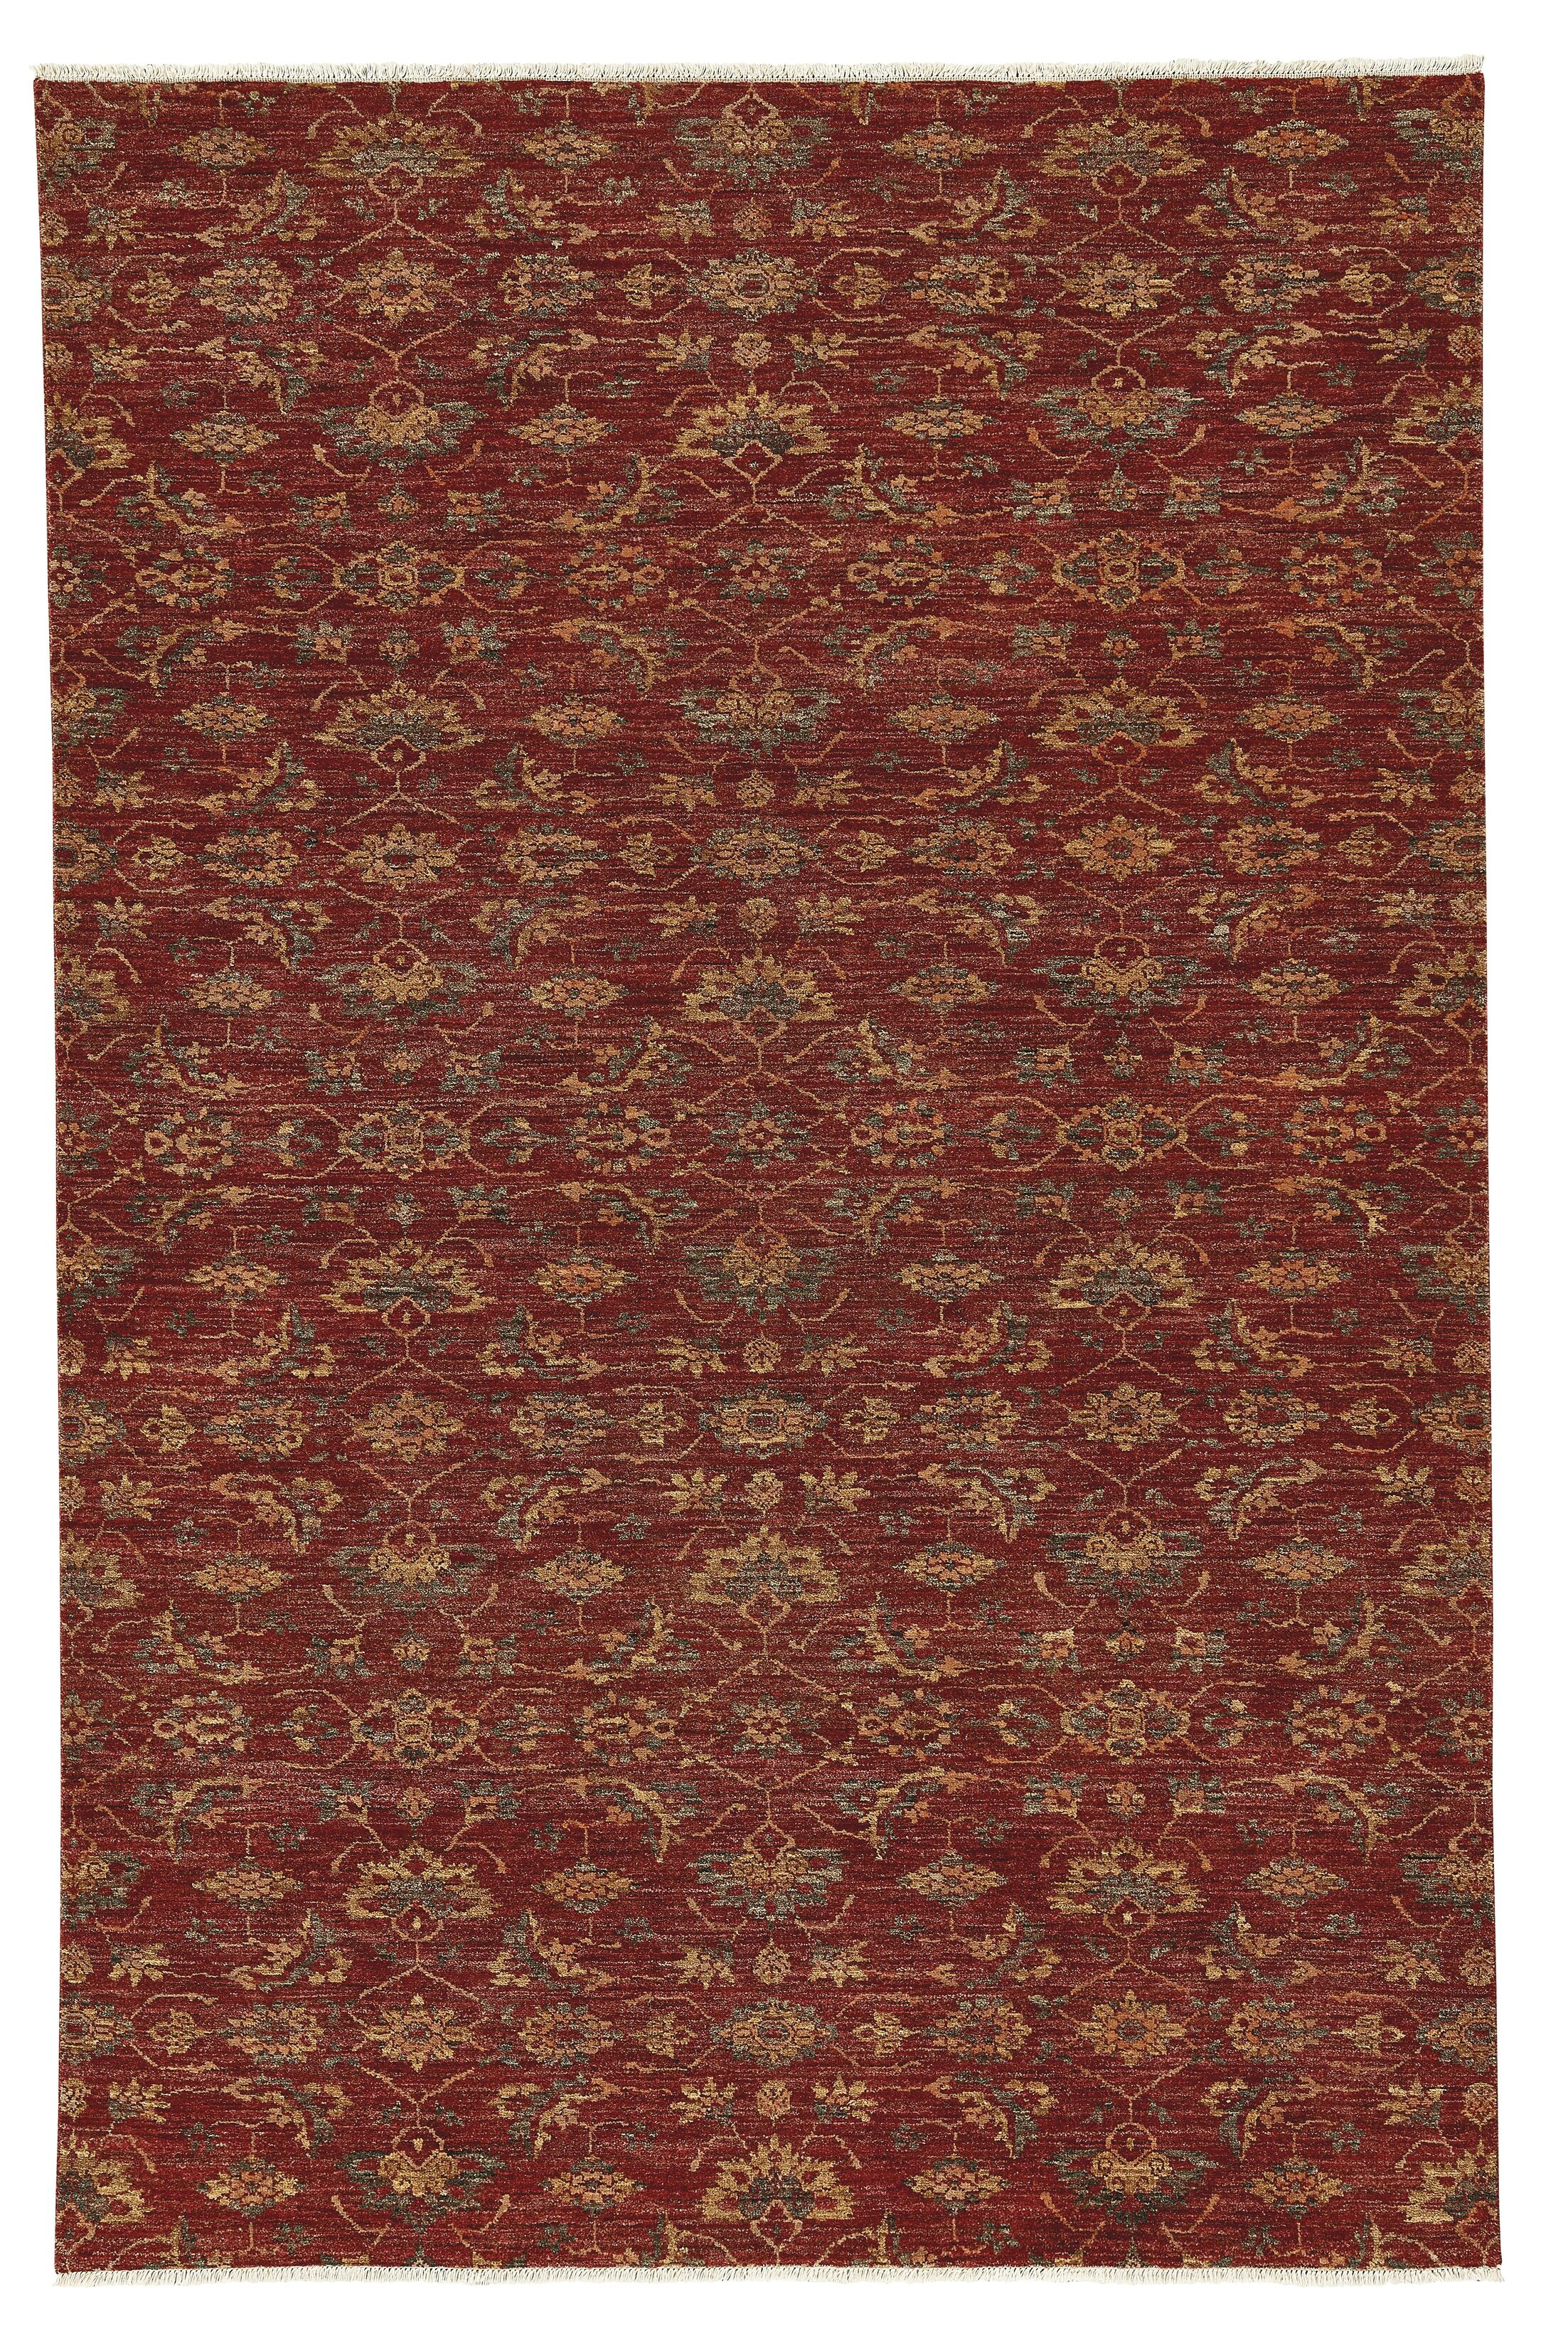 Eltingville Hand-Knotted Wool Sienna Area Rug Rug Size: Rectangle 9' x 12'